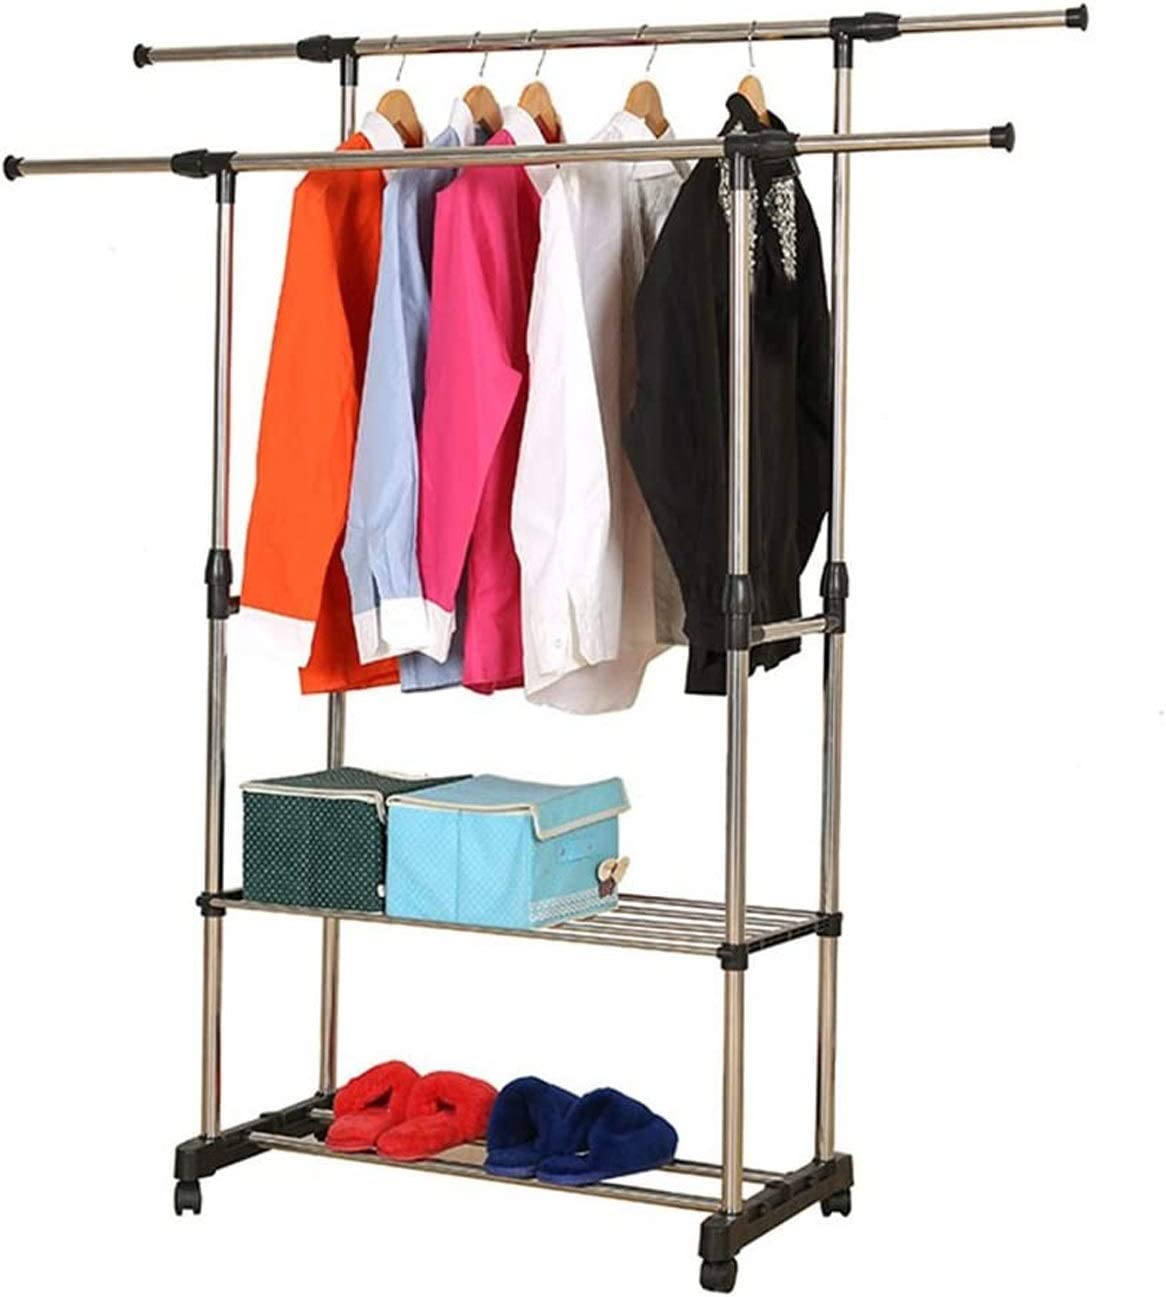 Clothes Drying Rack Easy-to-use Laundry Storage Long-awaited Products Steel Dou Stainless